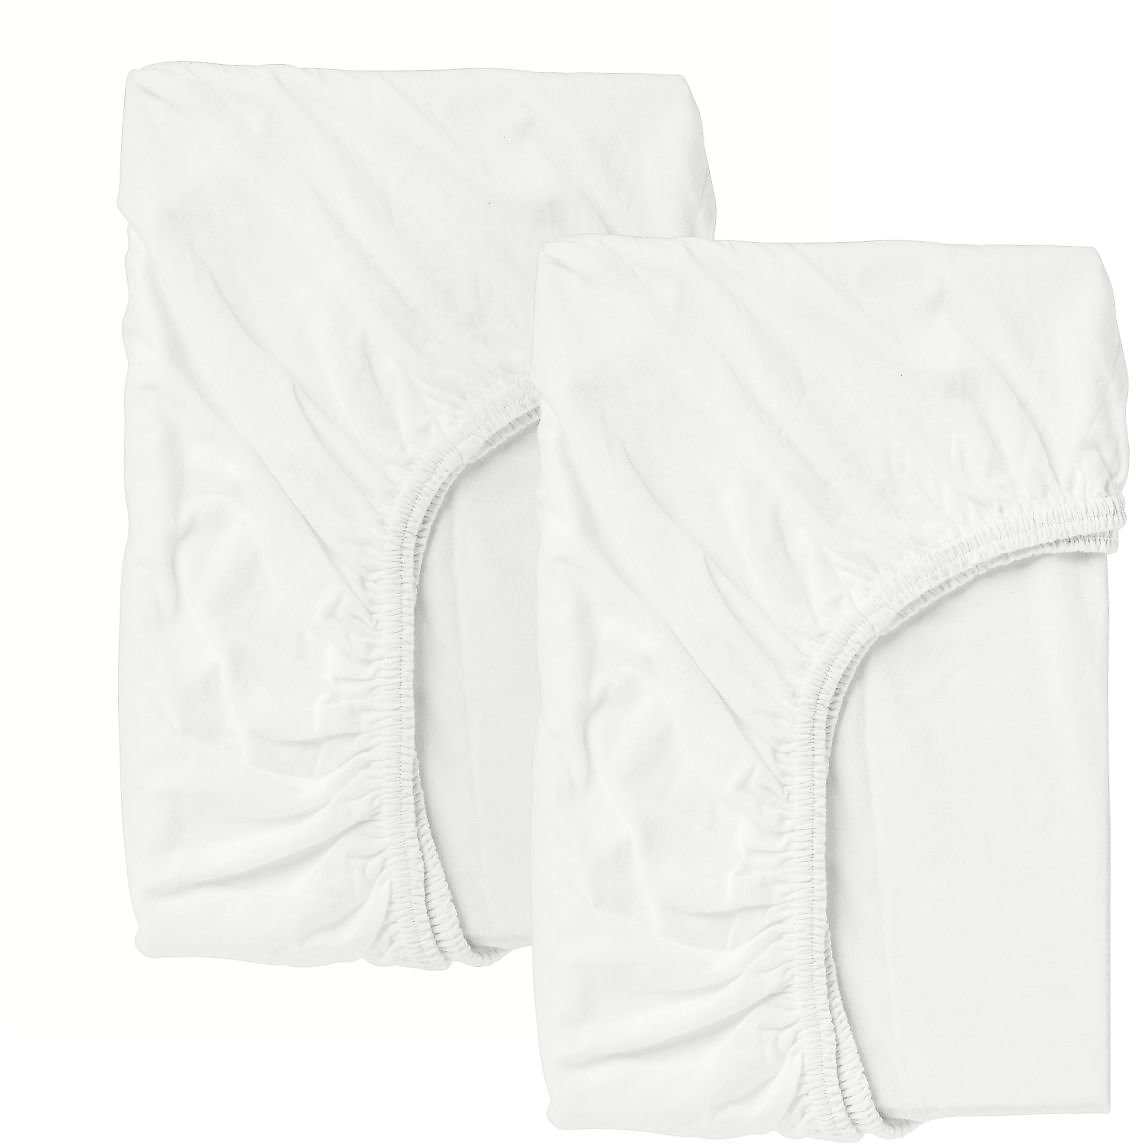 LEN Crib Fitted Sheet, White28x52